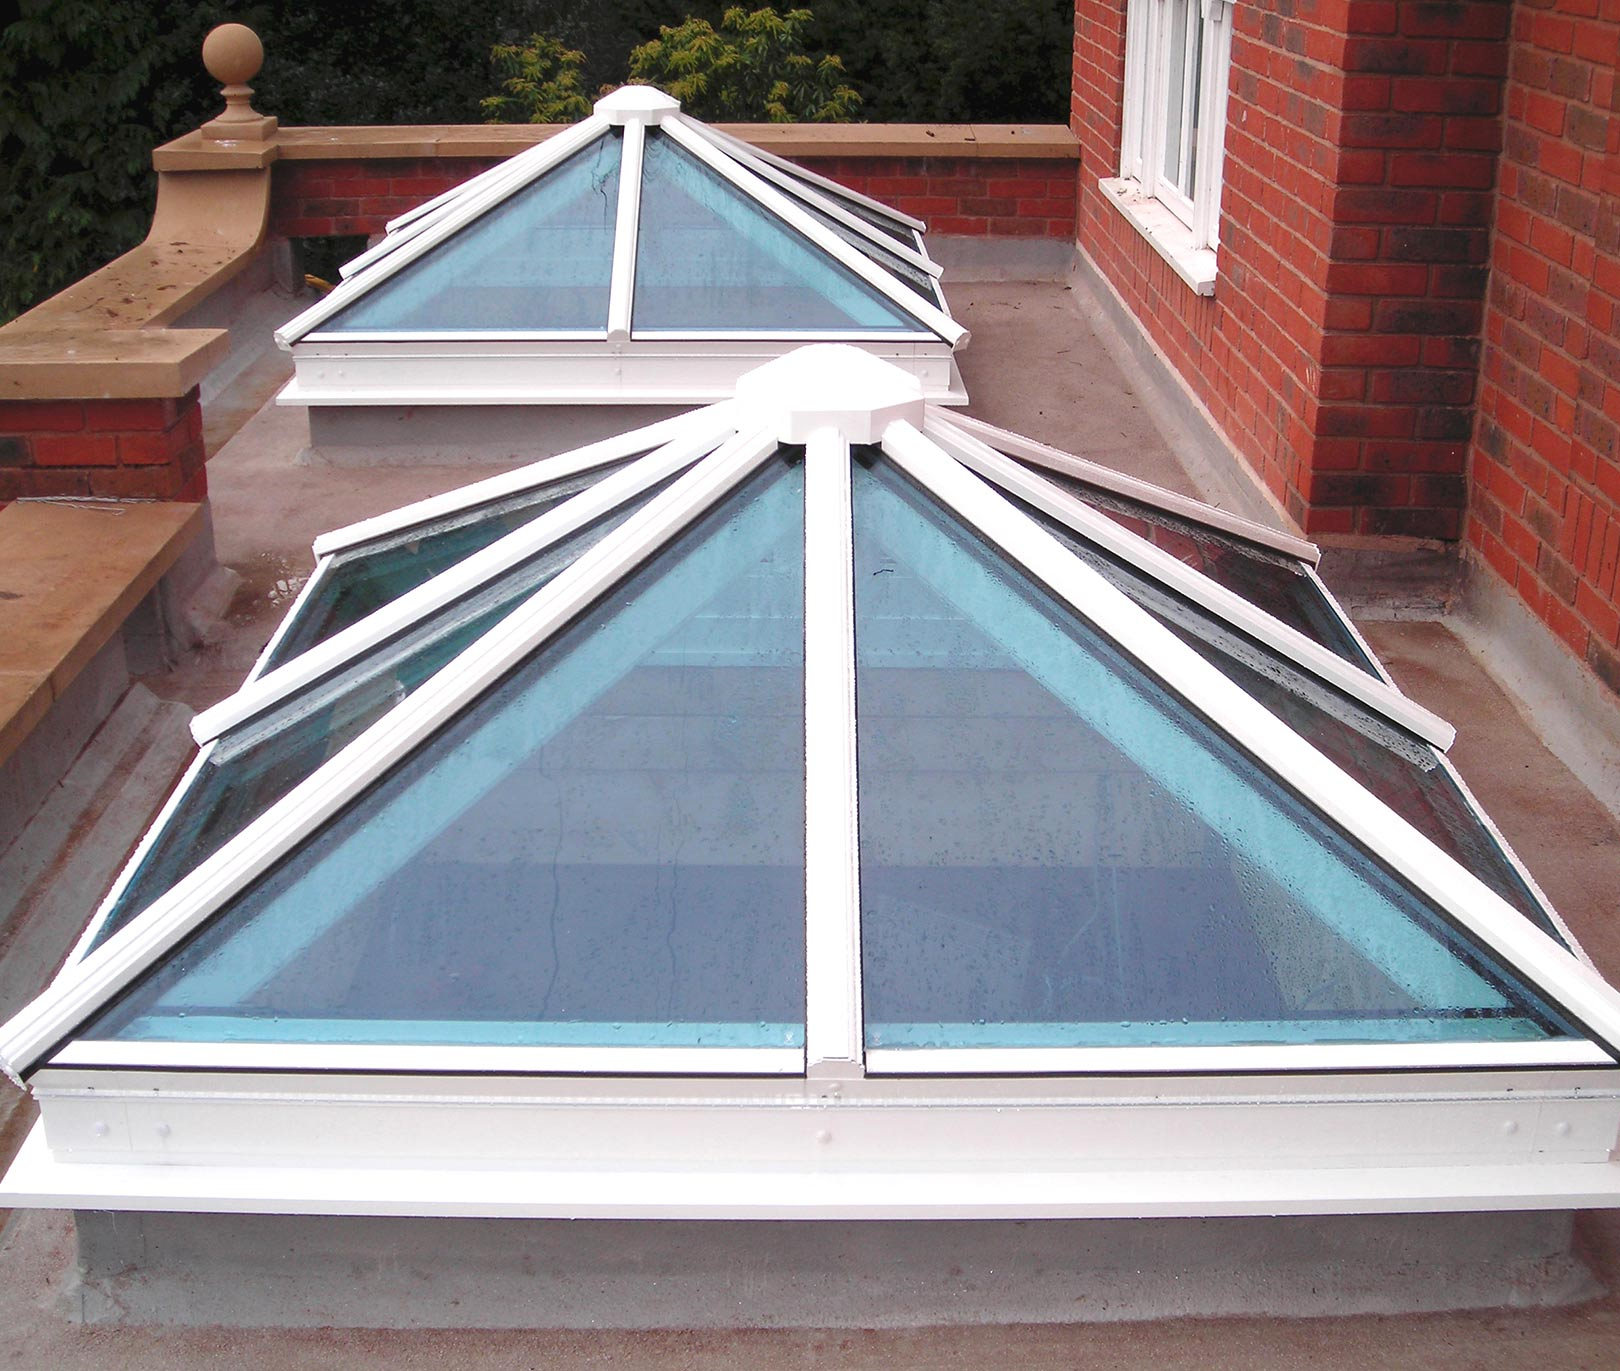 Roof Lanterns And Glazed Roofs Design Bifolds